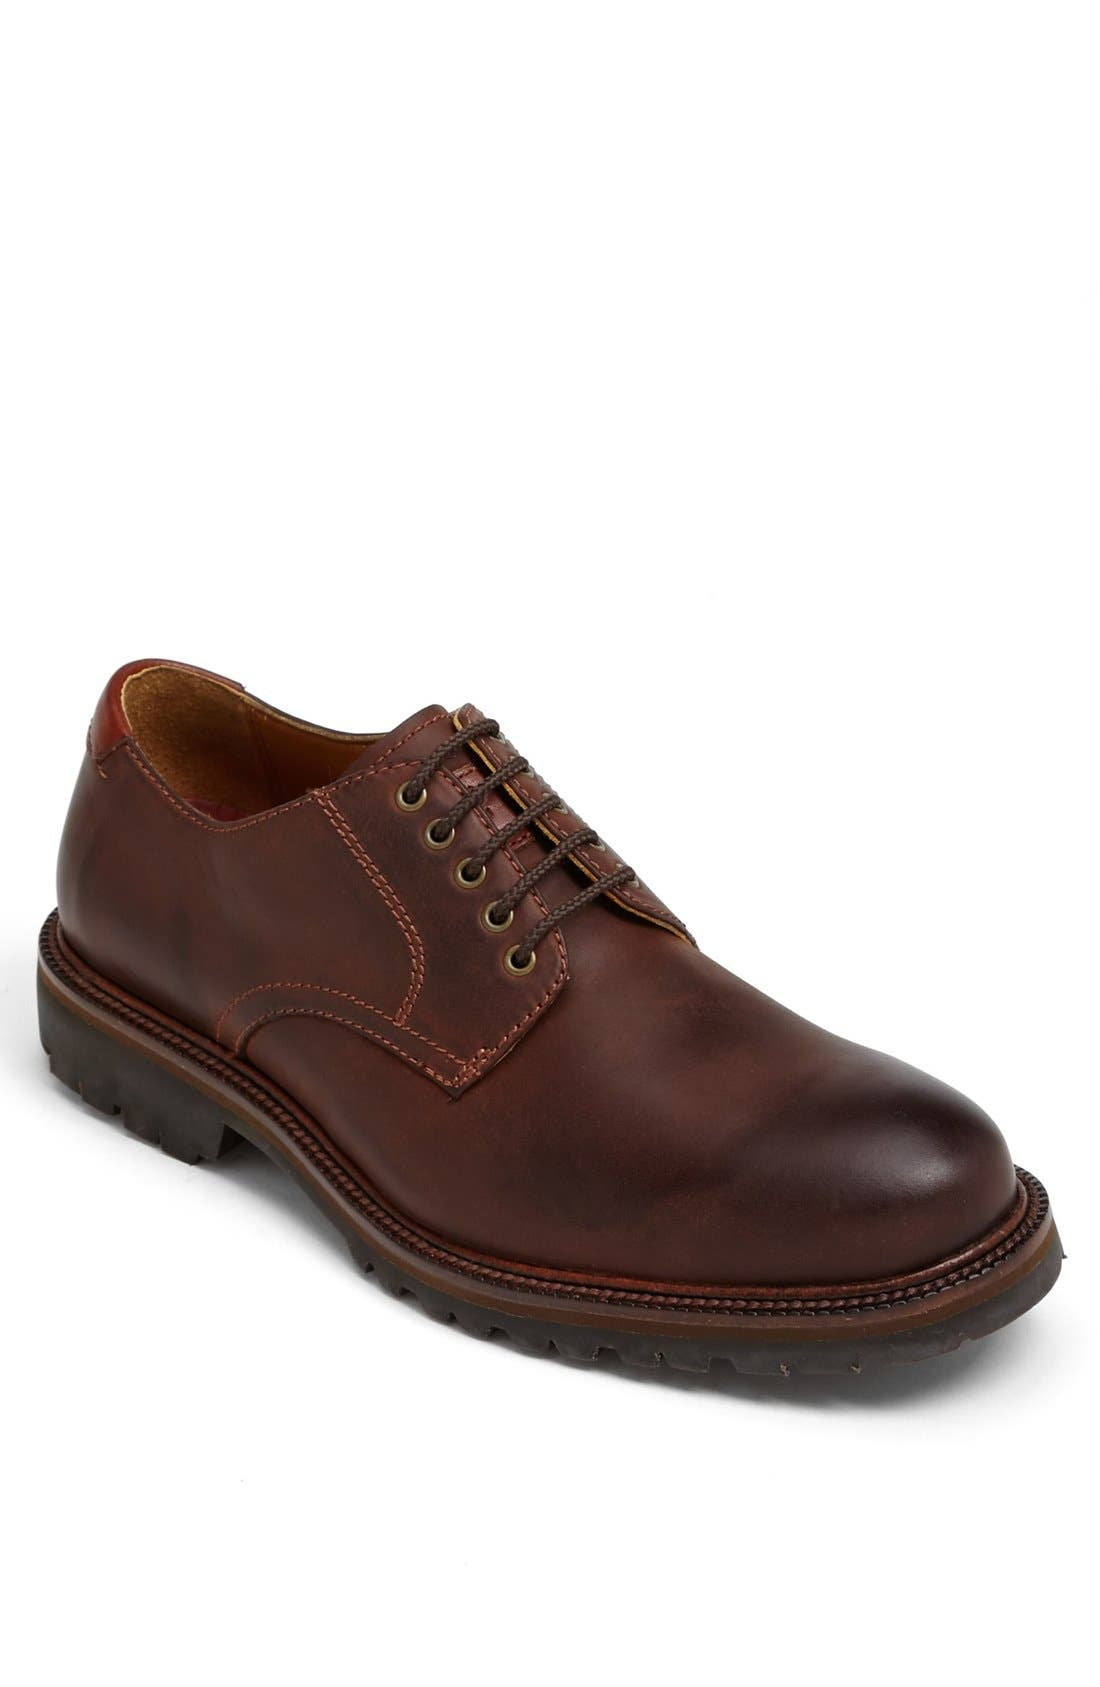 Alternate Image 1 Selected - Trask 'Gallatin' Plain Toe Derby